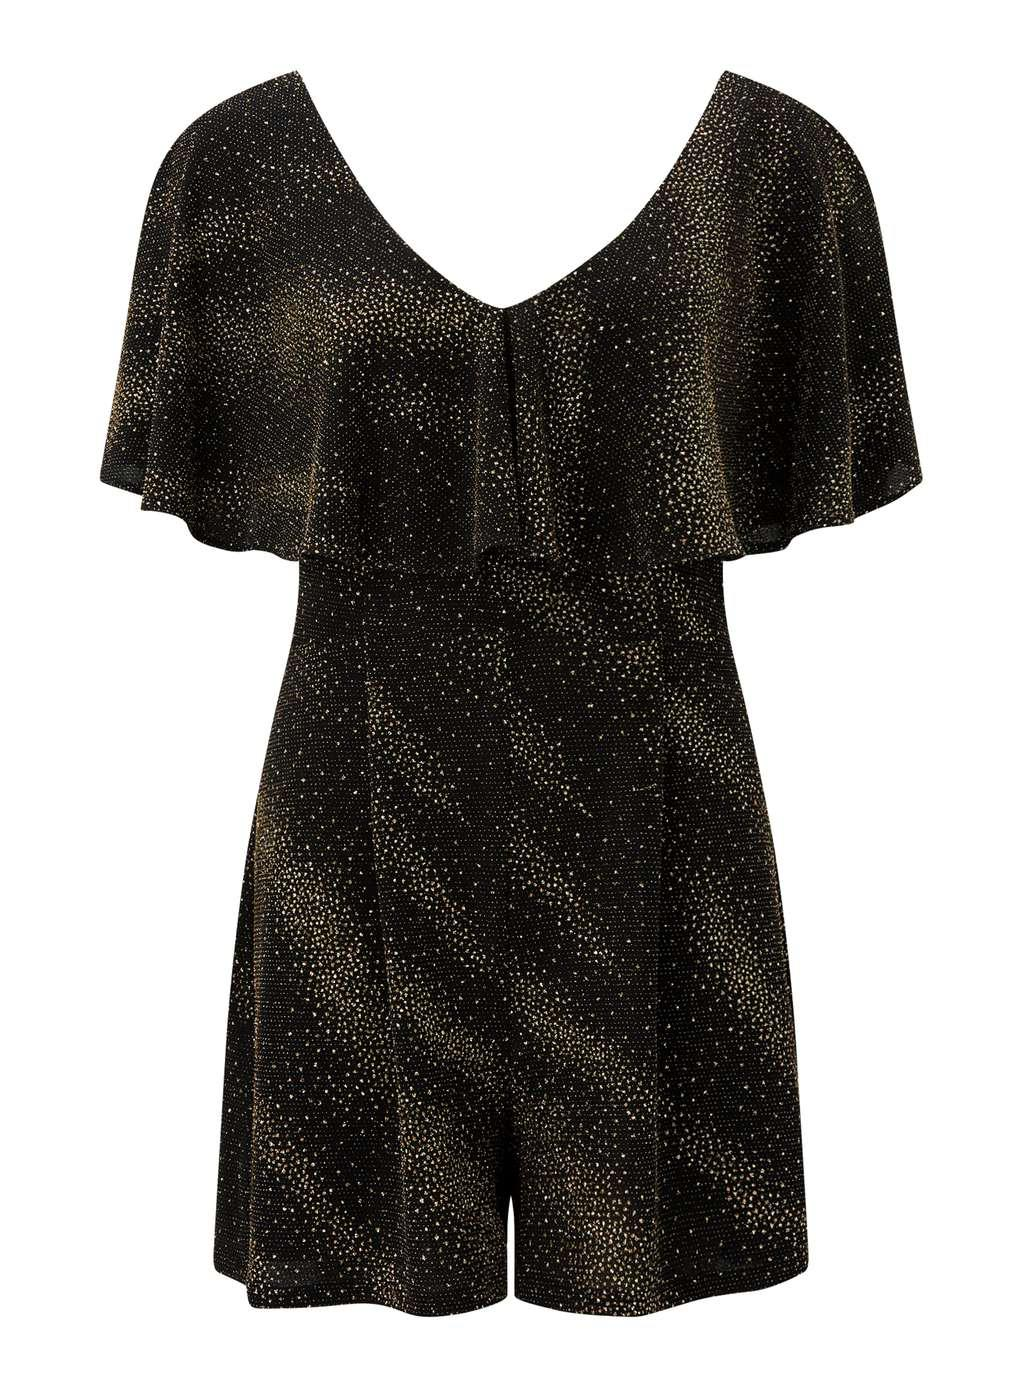 8b1aa8ddad Lyst - Miss Selfridge Gold Glitter Cape Playsuit